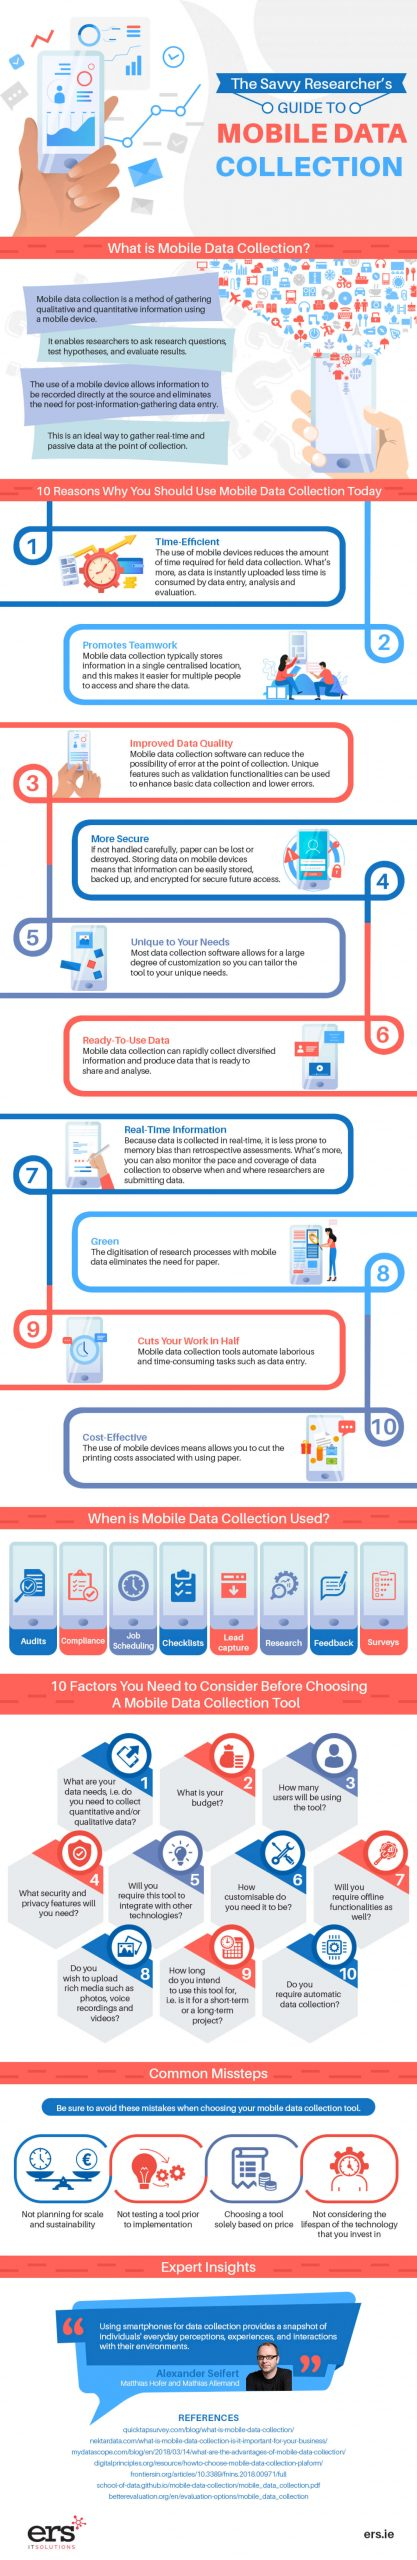 guide-to-mobile-data-collection-infographic